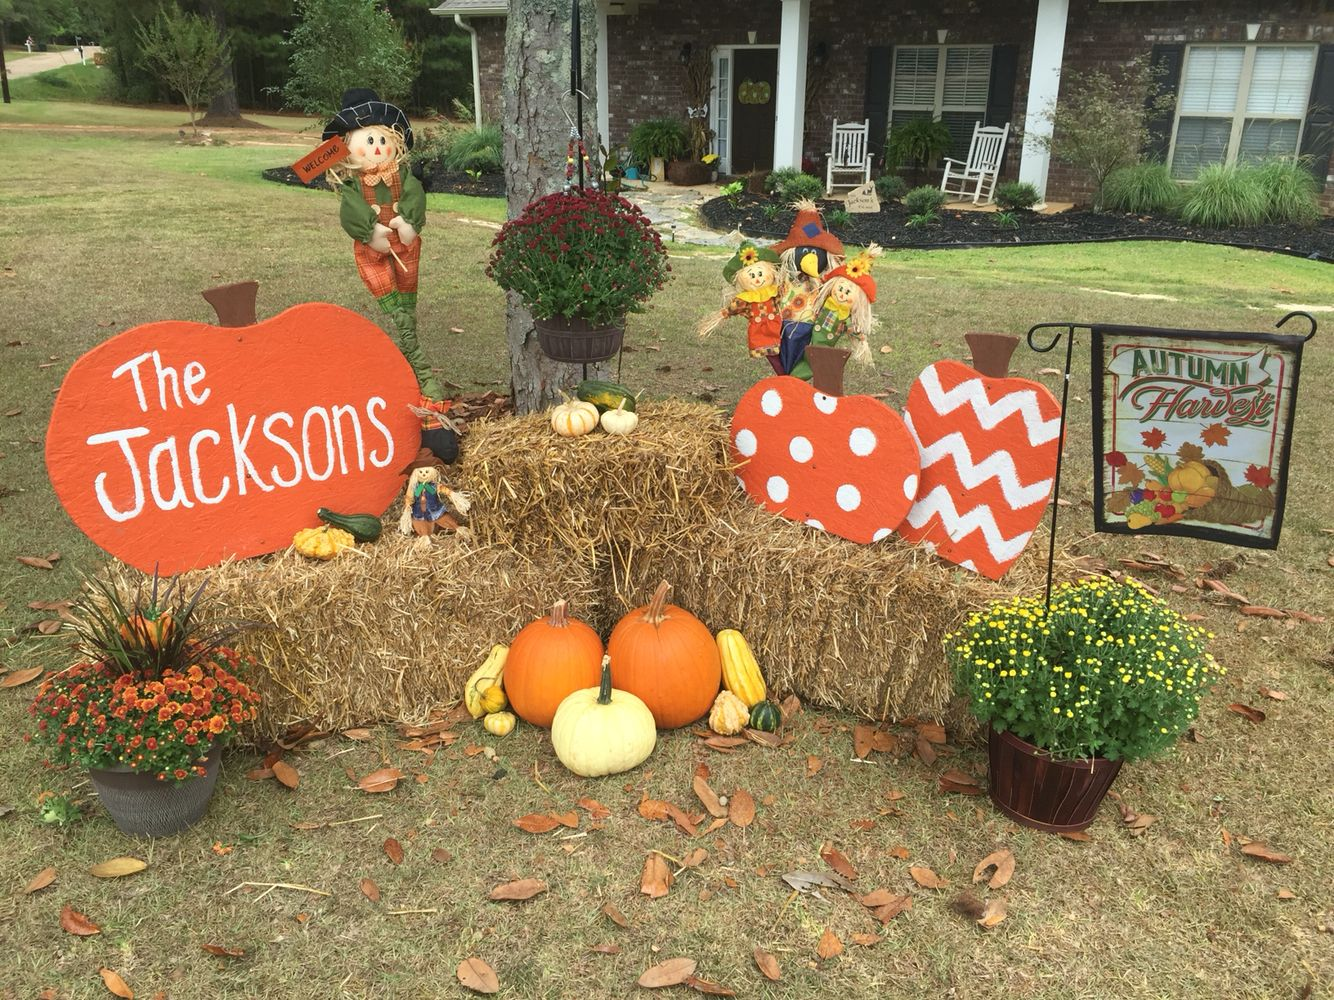 Wood yard decorations - Happy Fall Yall Pumpkin